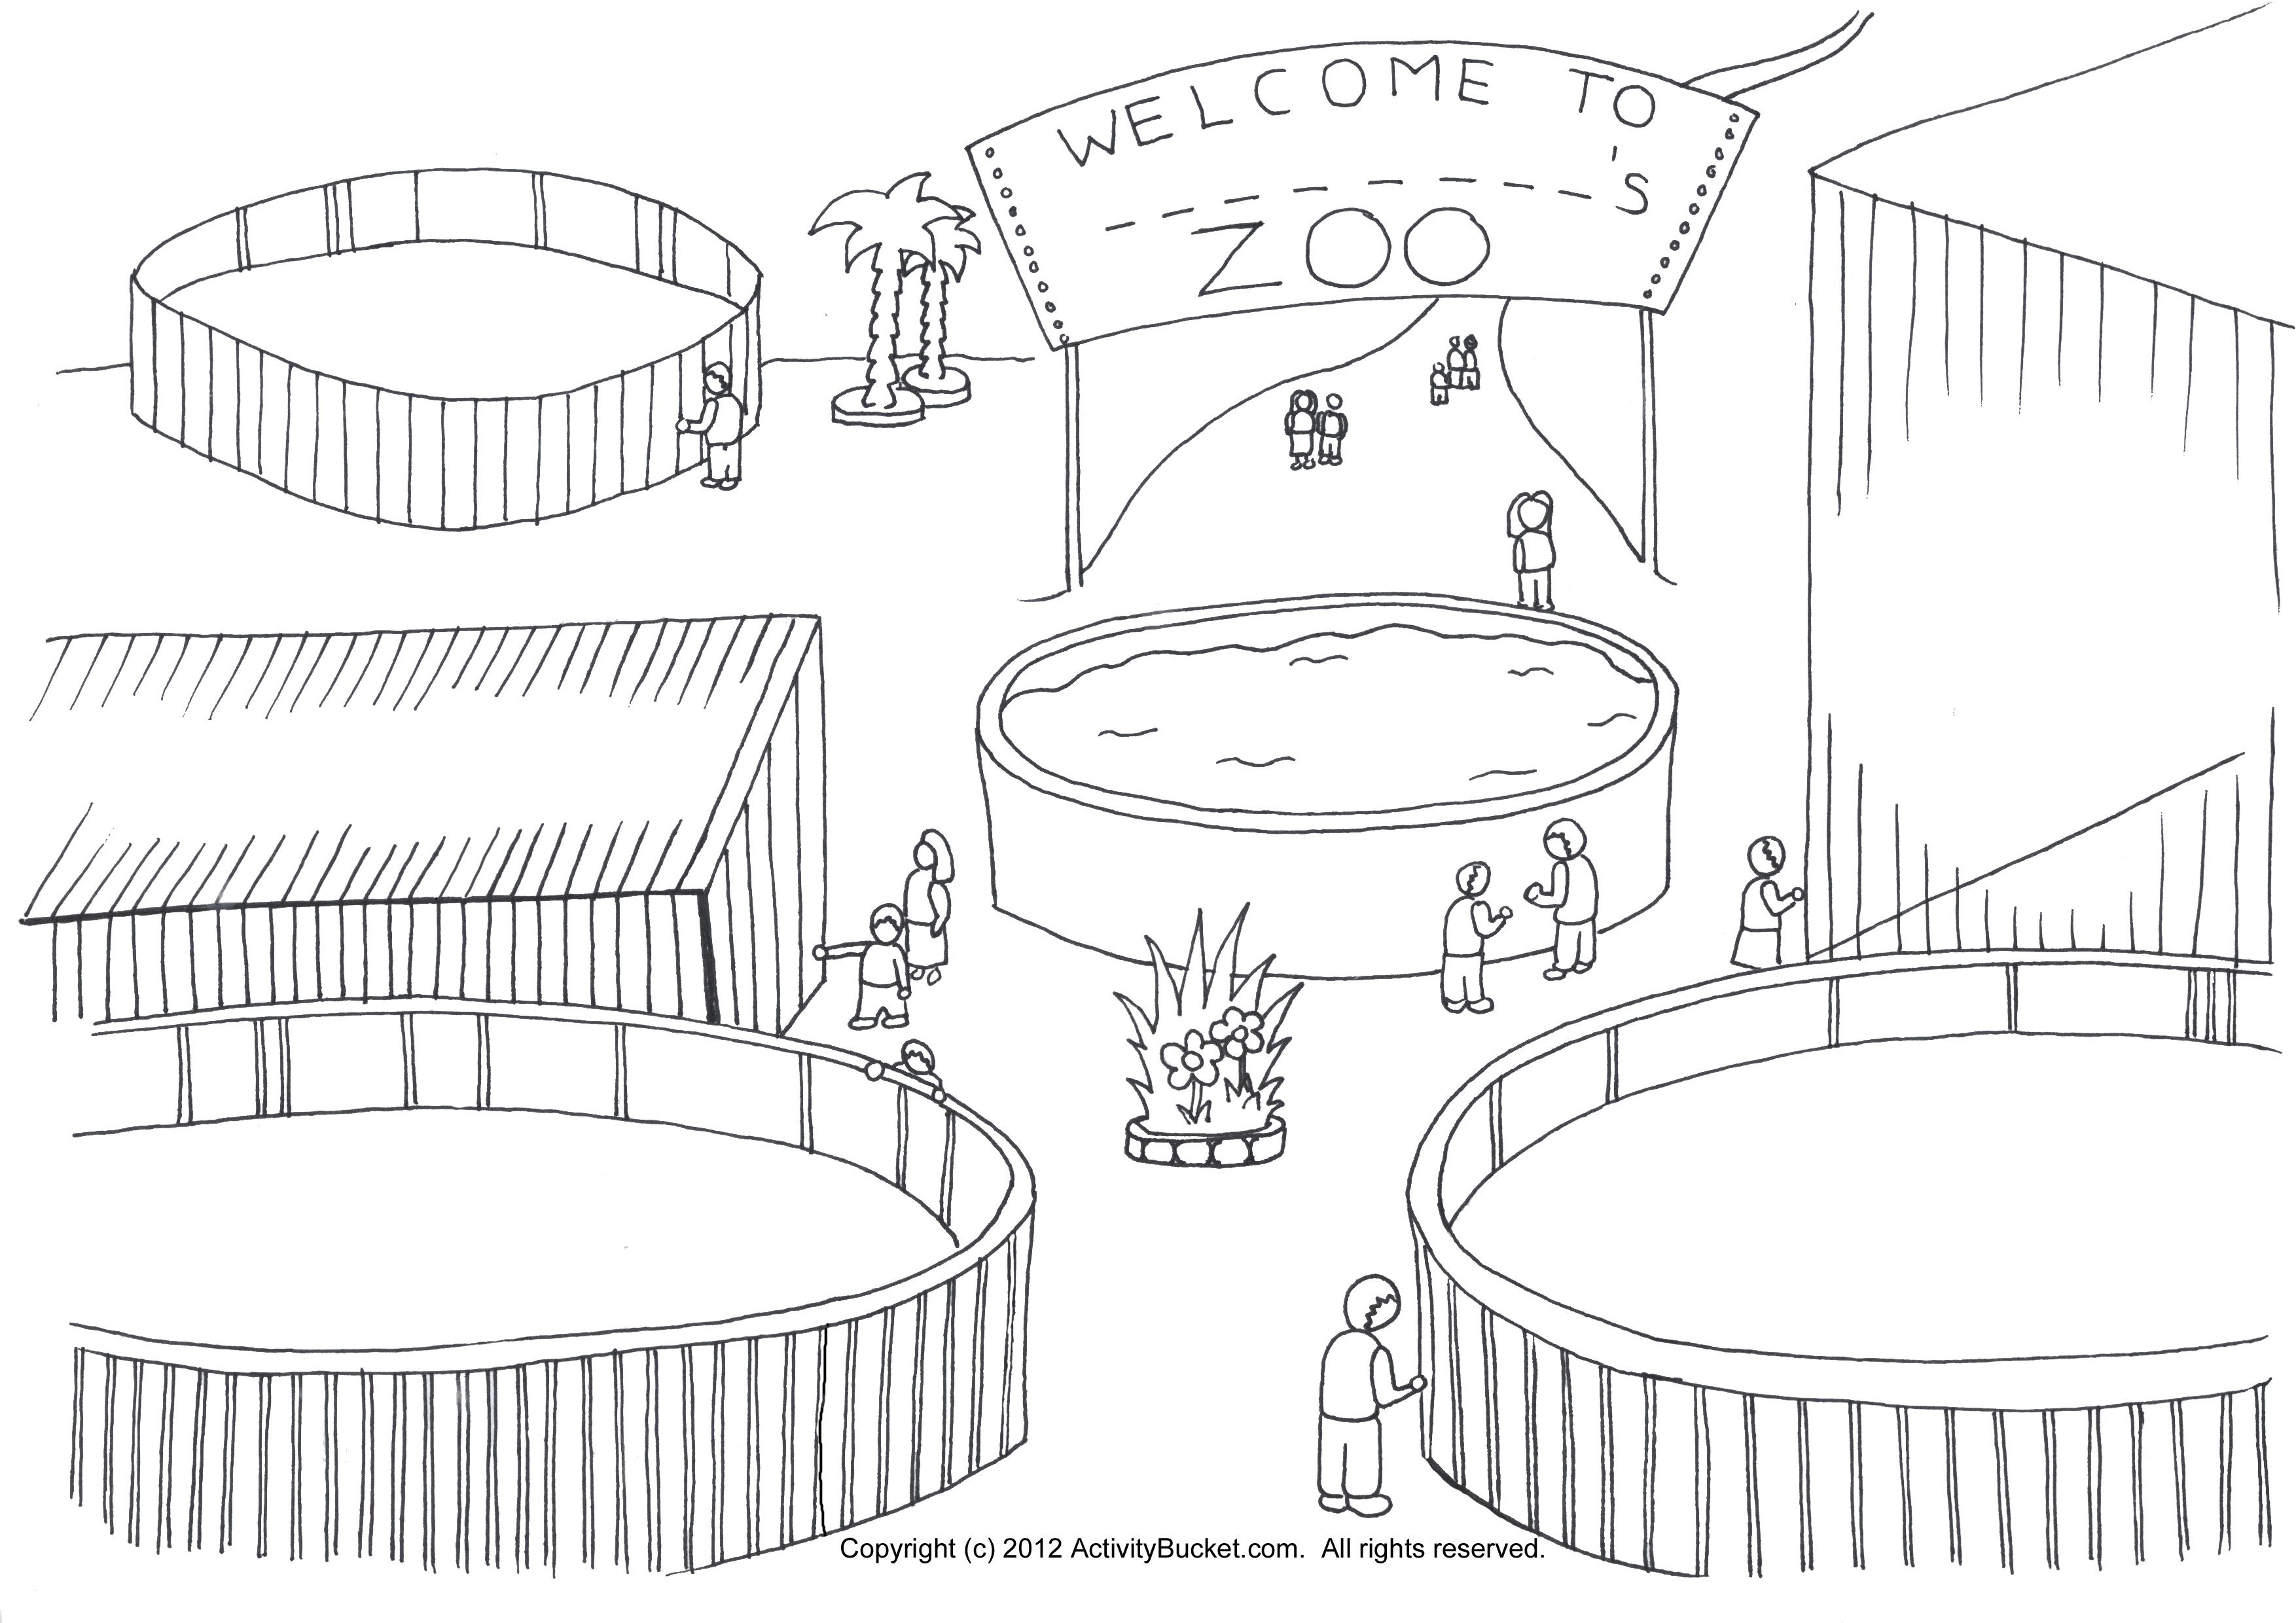 my zoo coloring page zoo animal habitats pinterest coloring zoos and coloring pages. Black Bedroom Furniture Sets. Home Design Ideas